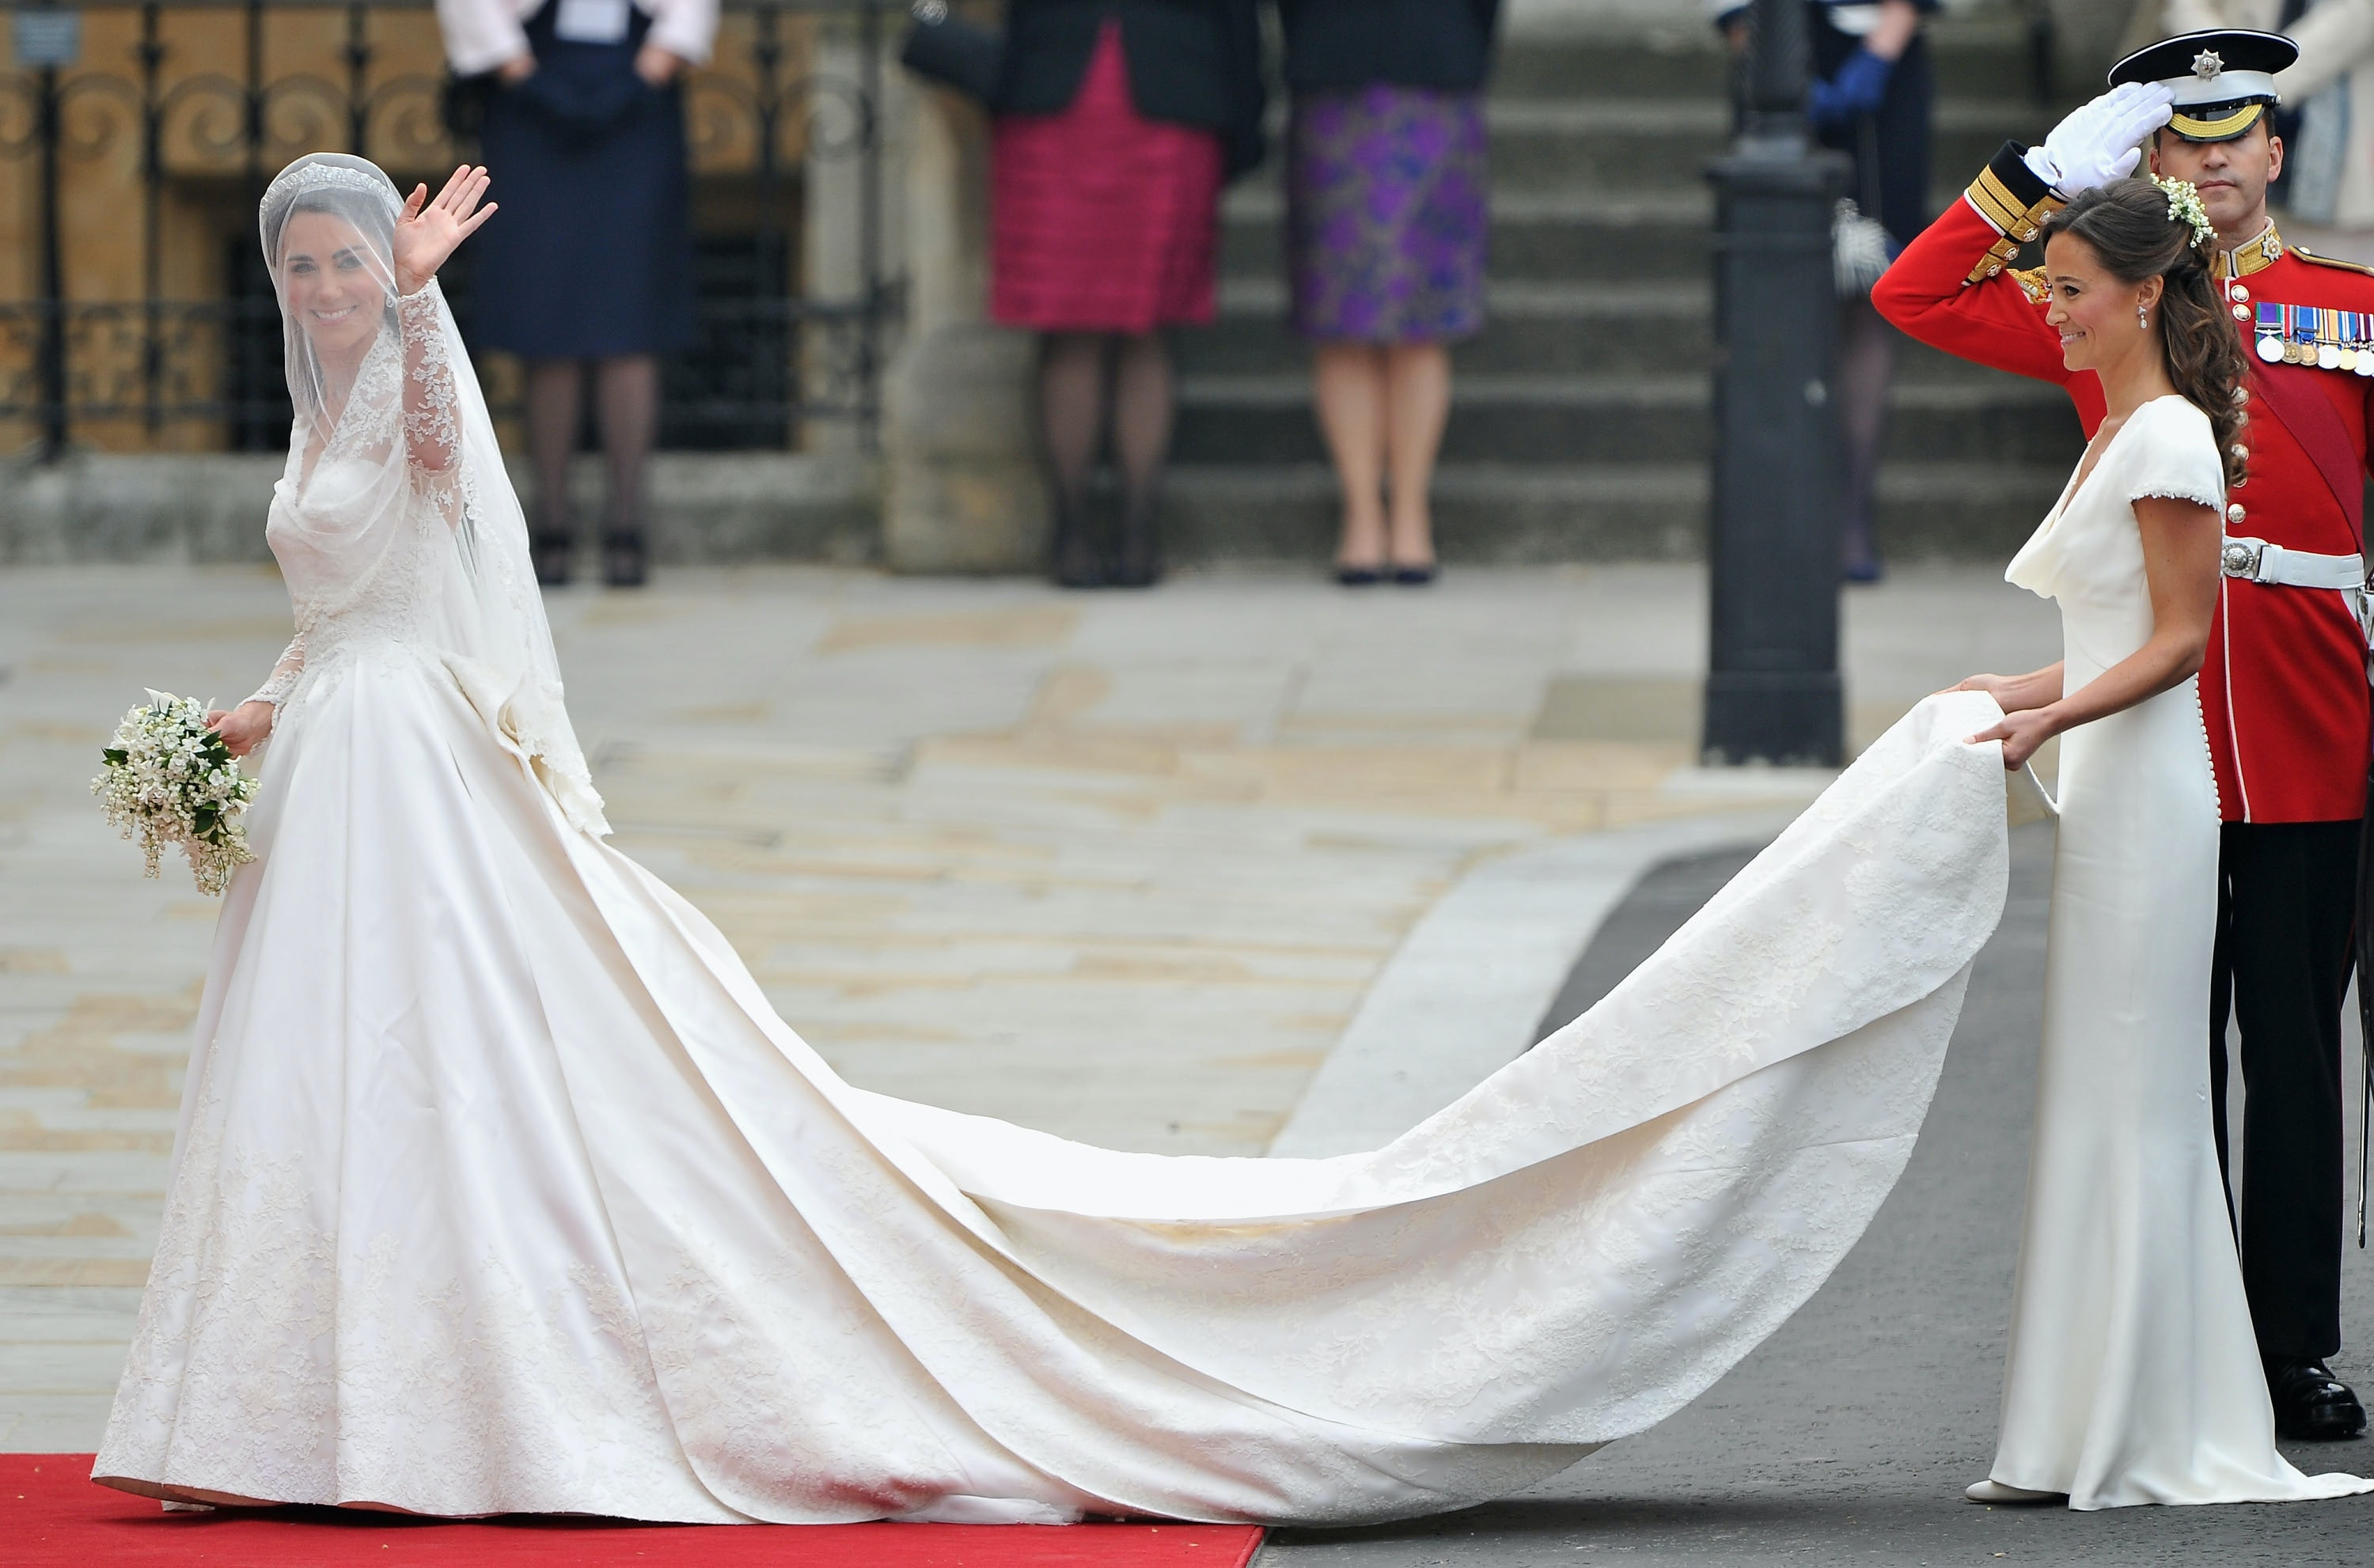 photos of meghan markle s first wedding dress prove she admires kate middleton s style https www elitedaily com p photos of meghan markles first wedding dress prove she admires kate middletons style 7376379